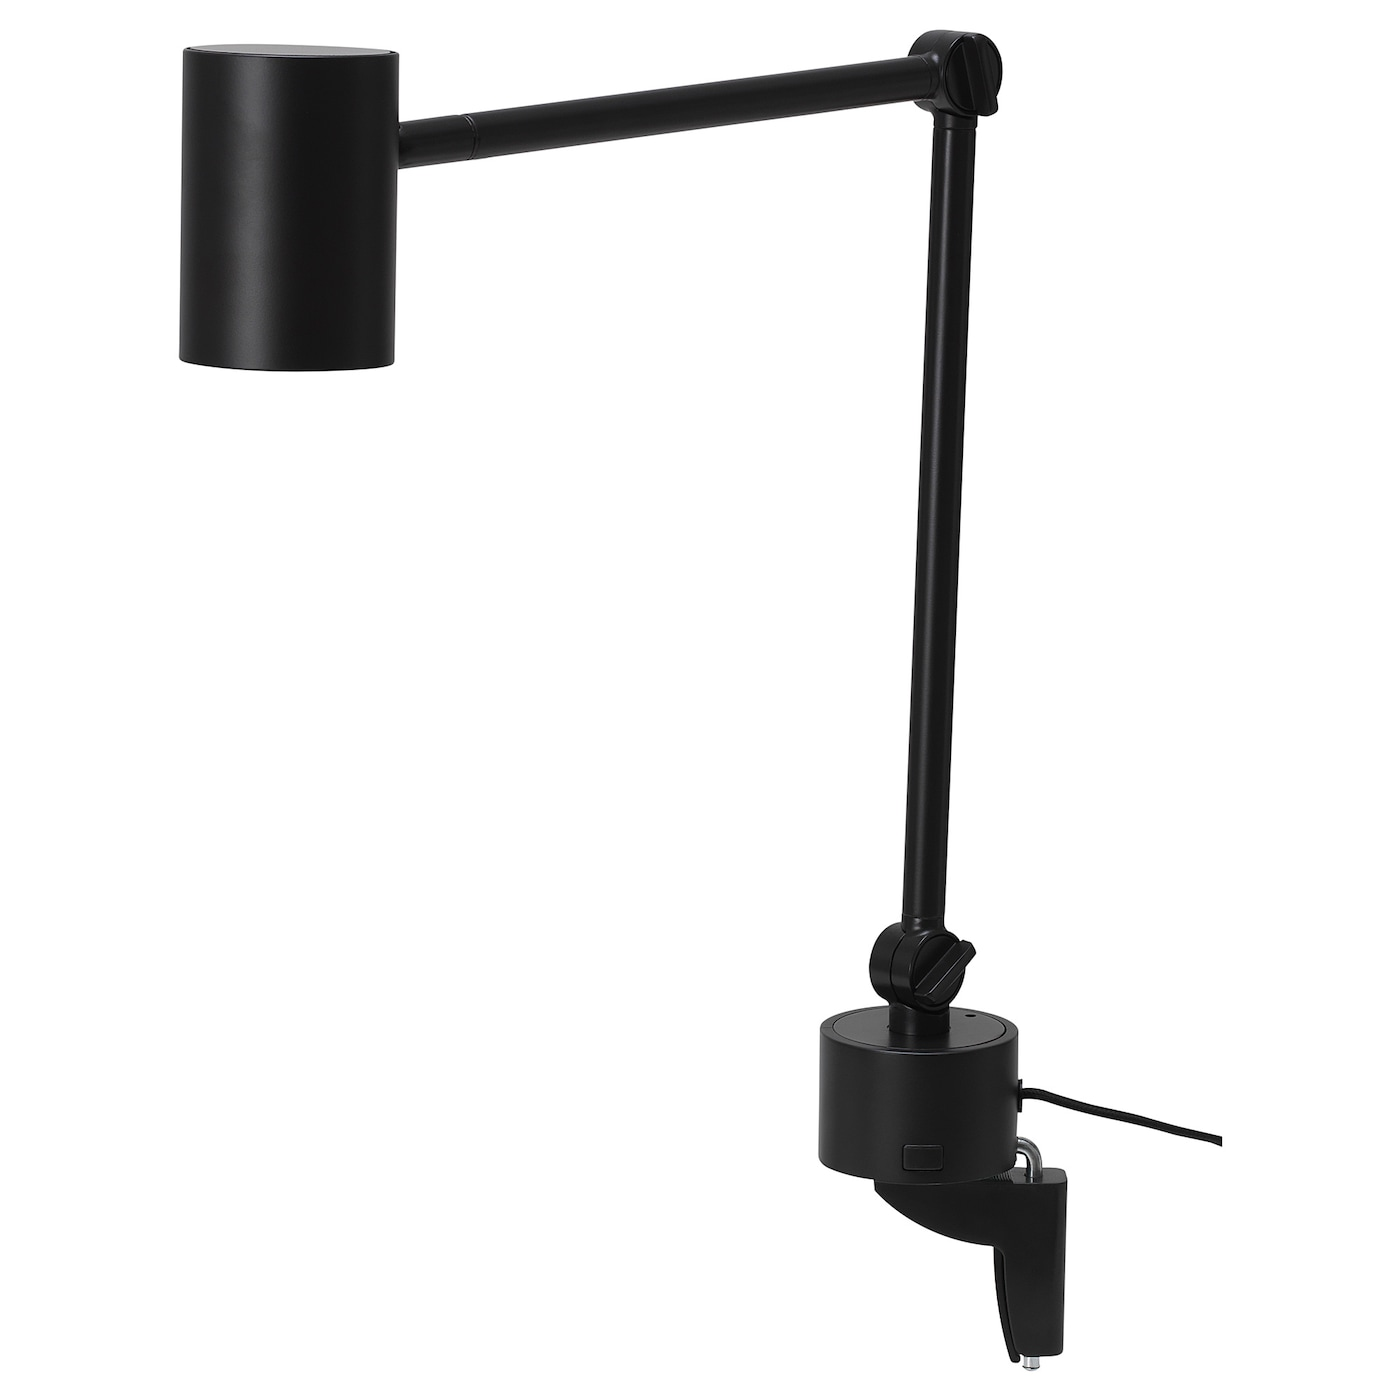 IKEA NYMÅNE work/wall lamp